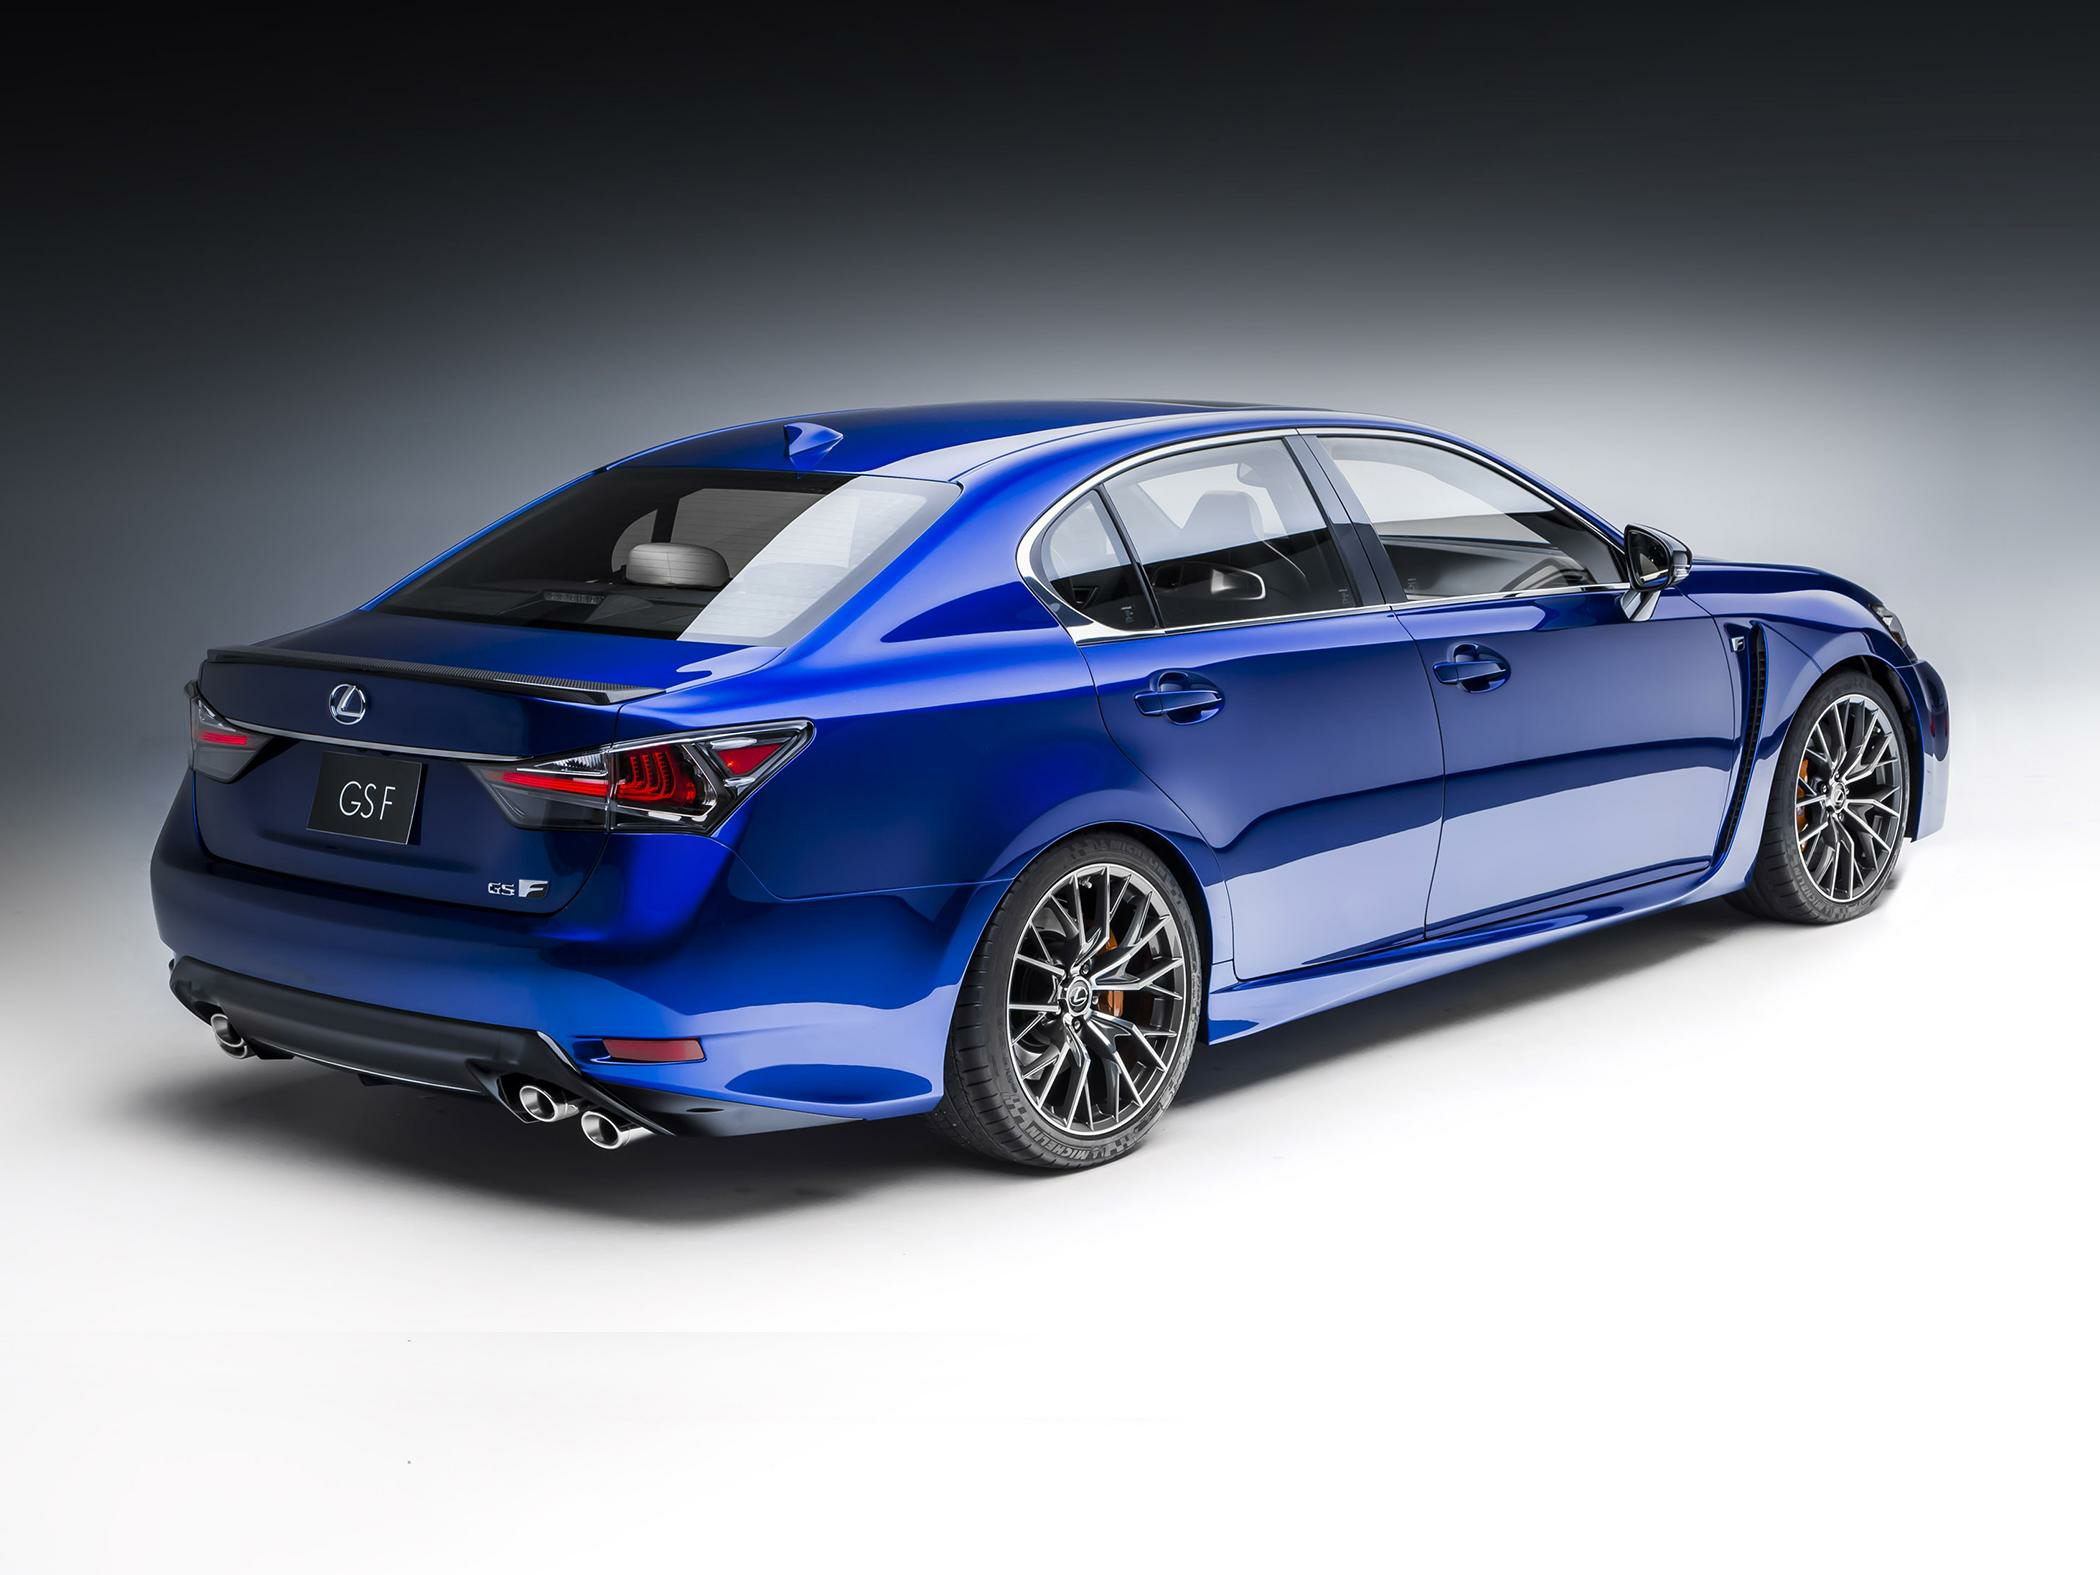 2016 Lexus GS F Owners Manual